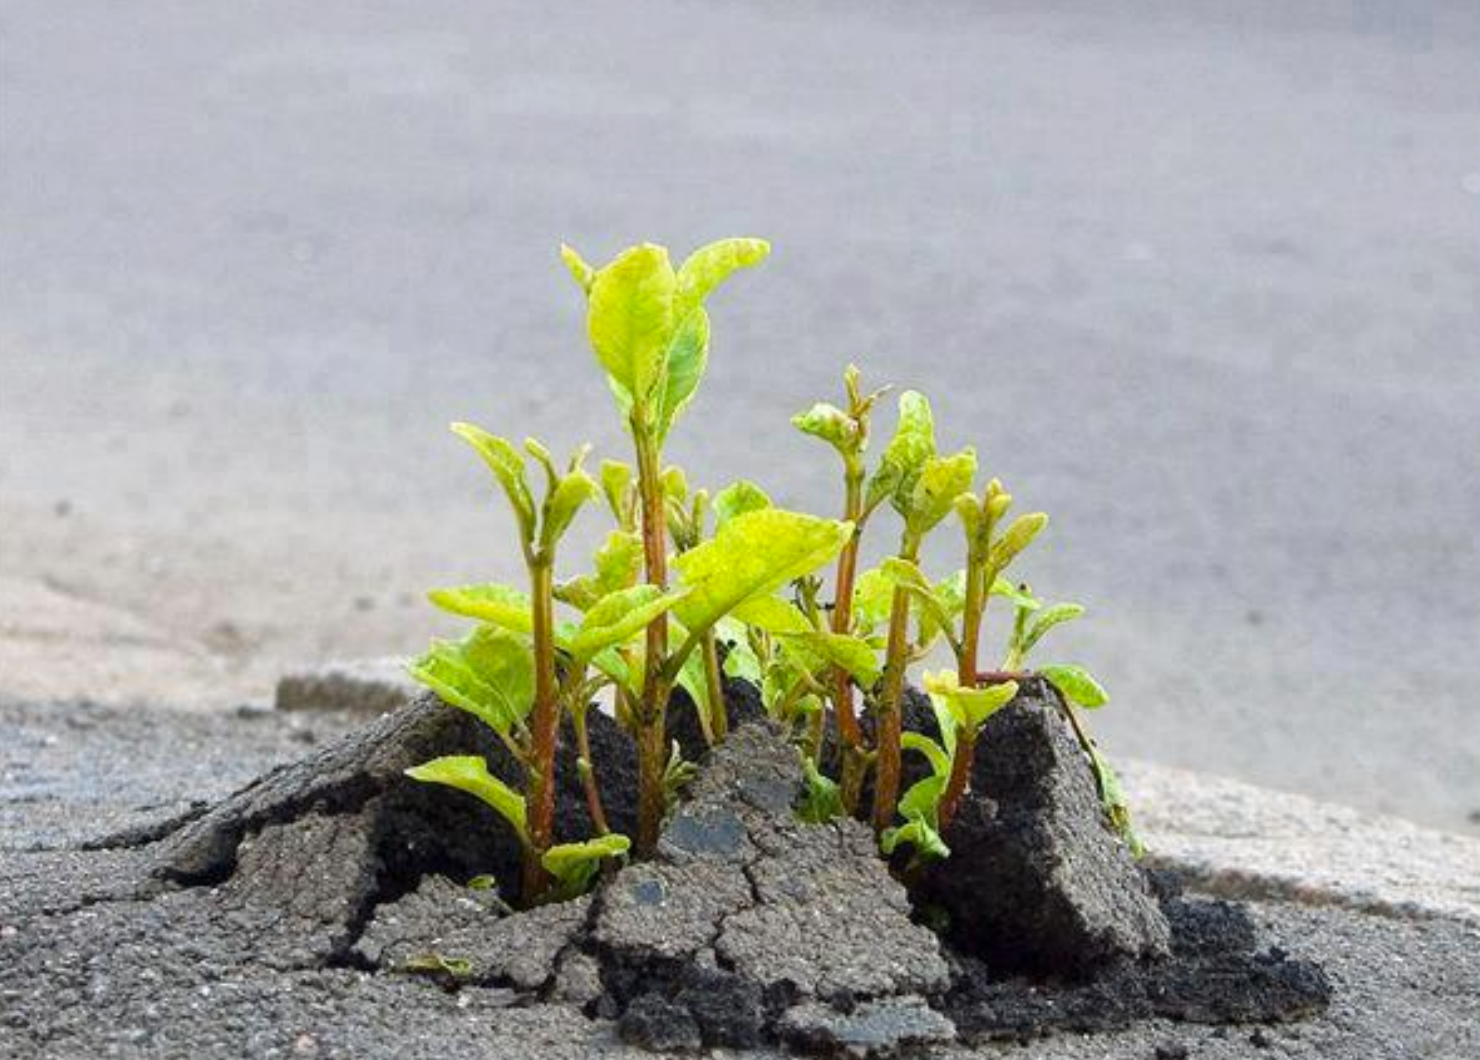 Sprouts through the concrete